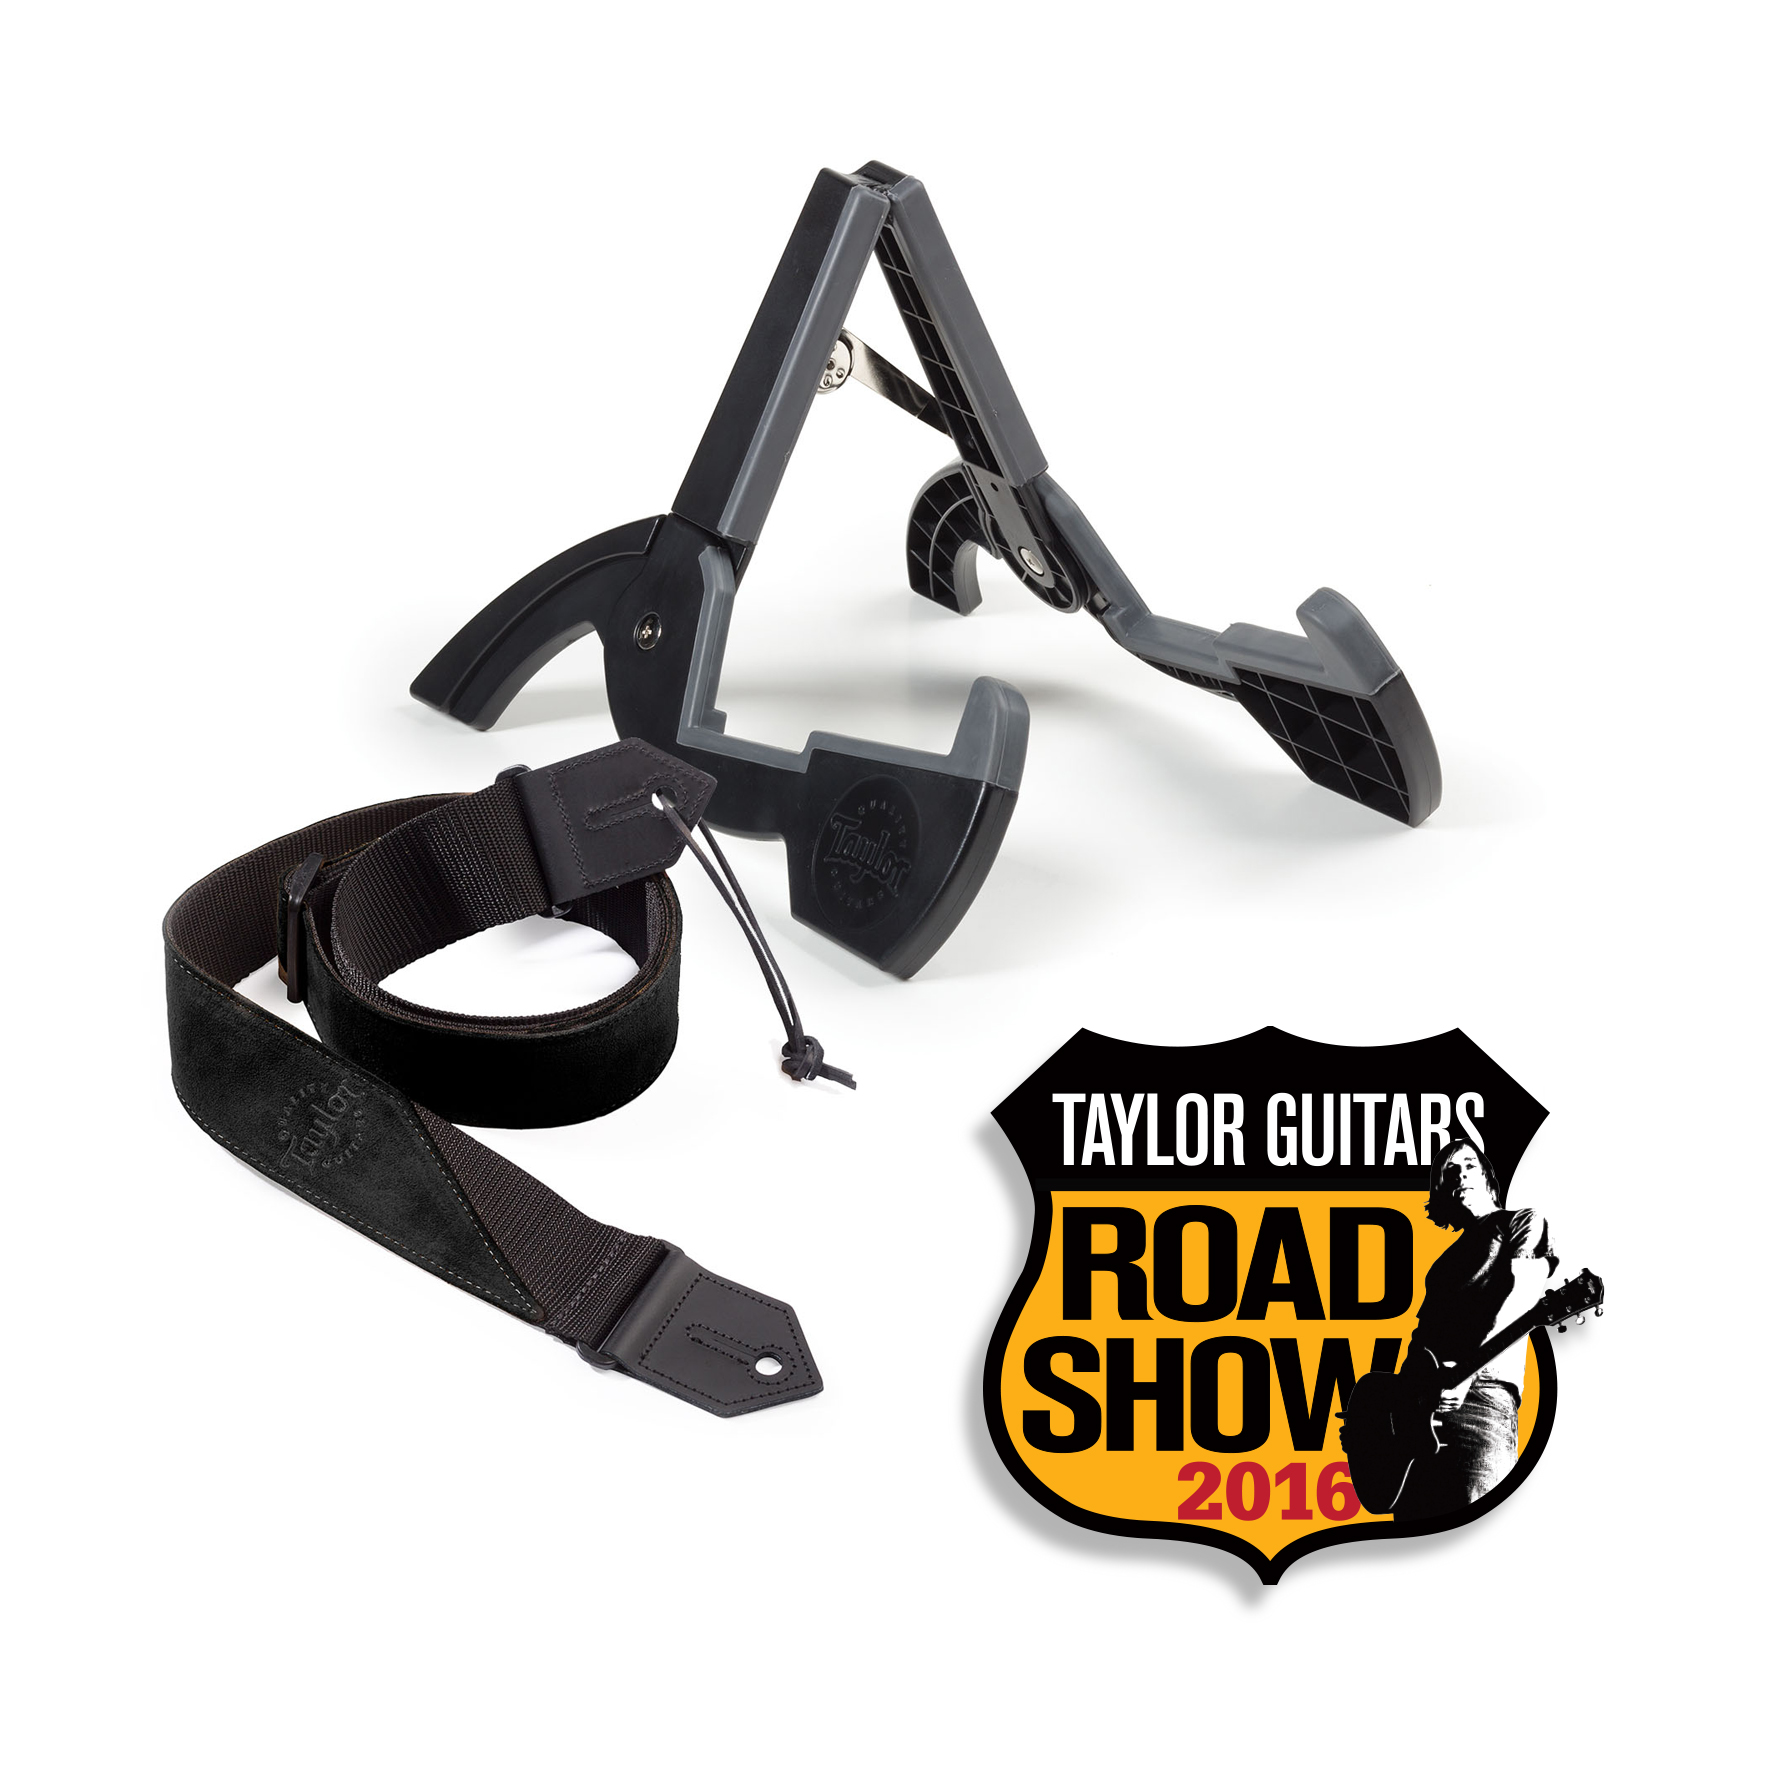 promo-stand-strap-road-show.jpg